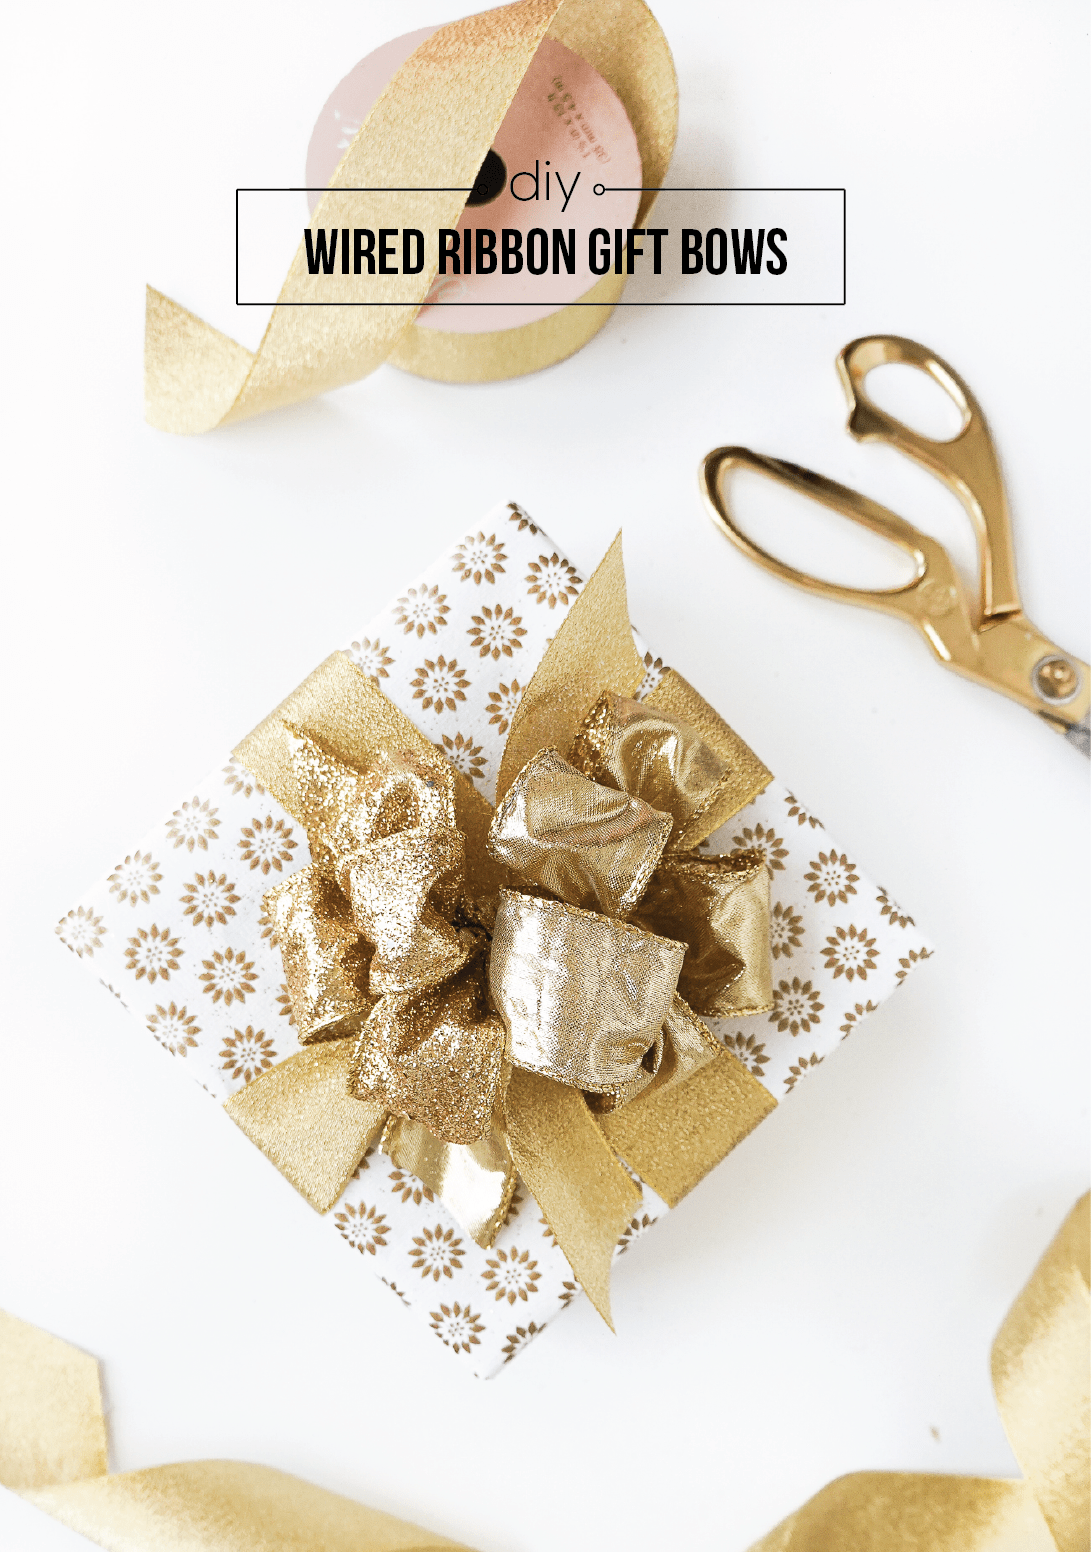 I'm sharing the secret to making poufy ribbon gift bows for gifts, and it's easier than you think!